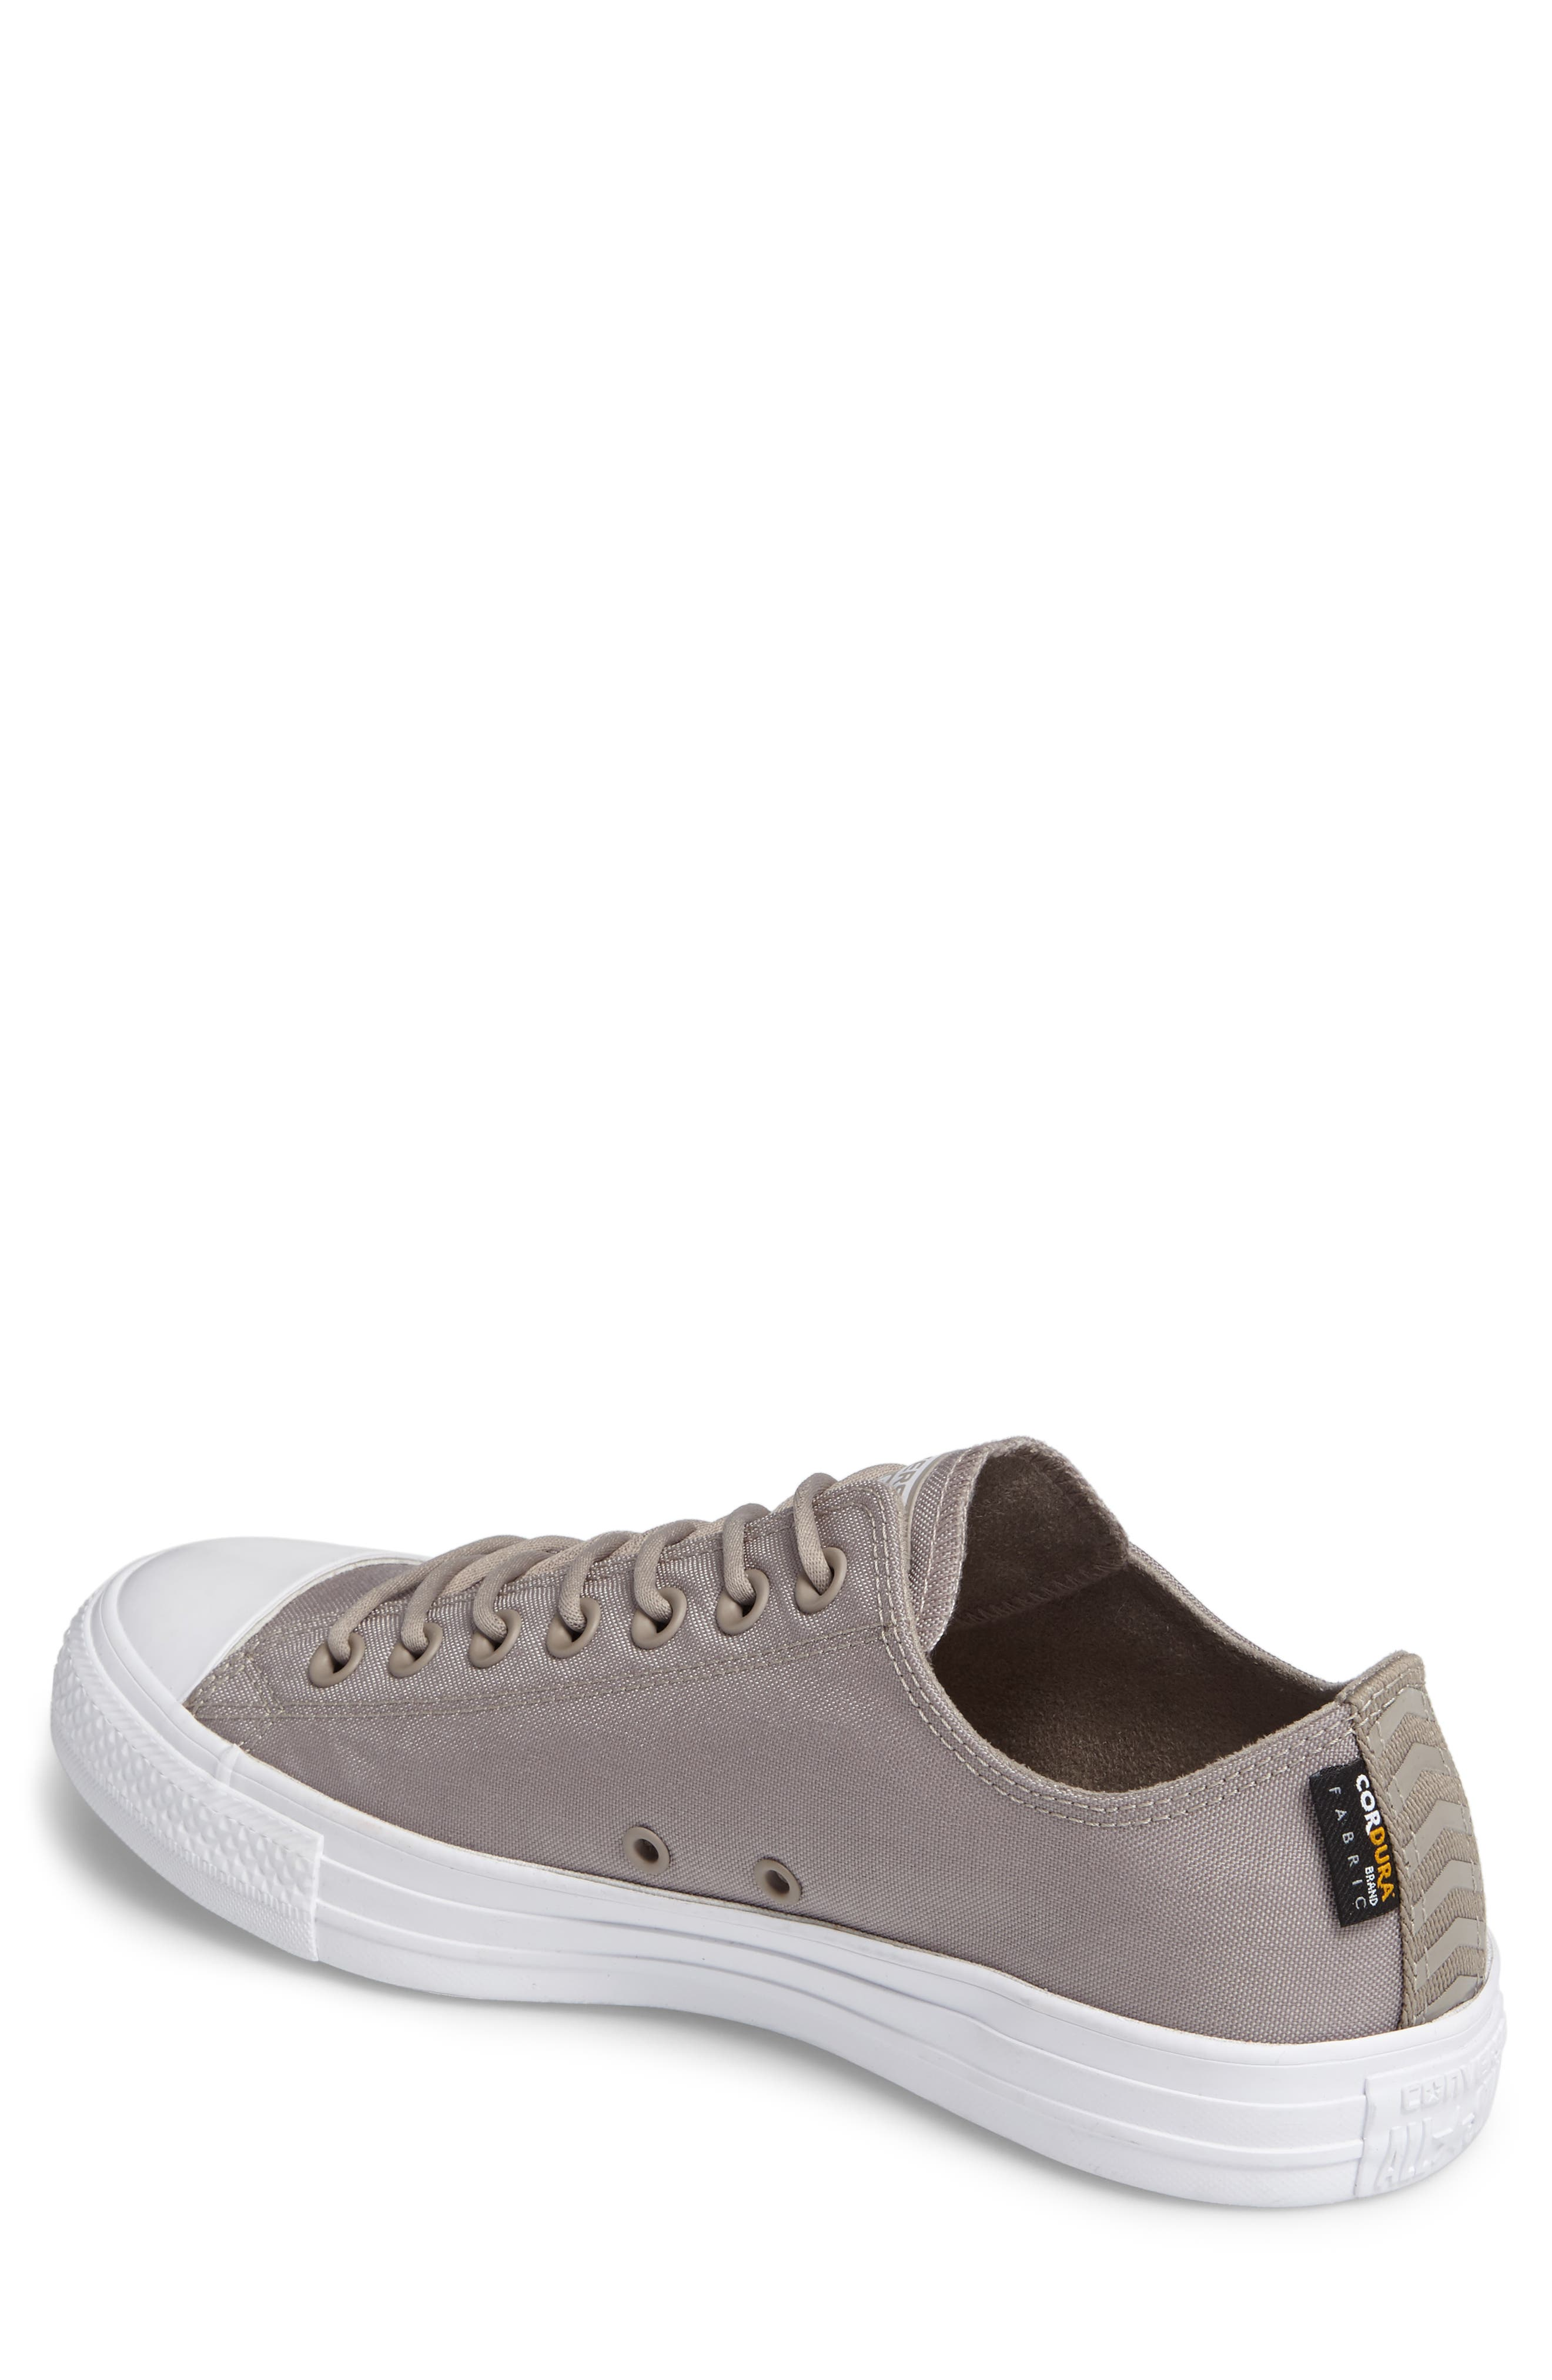 Chuck Taylor<sup>®</sup> All Star<sup>®</sup> Ox Sneaker,                             Alternate thumbnail 2, color,                             232